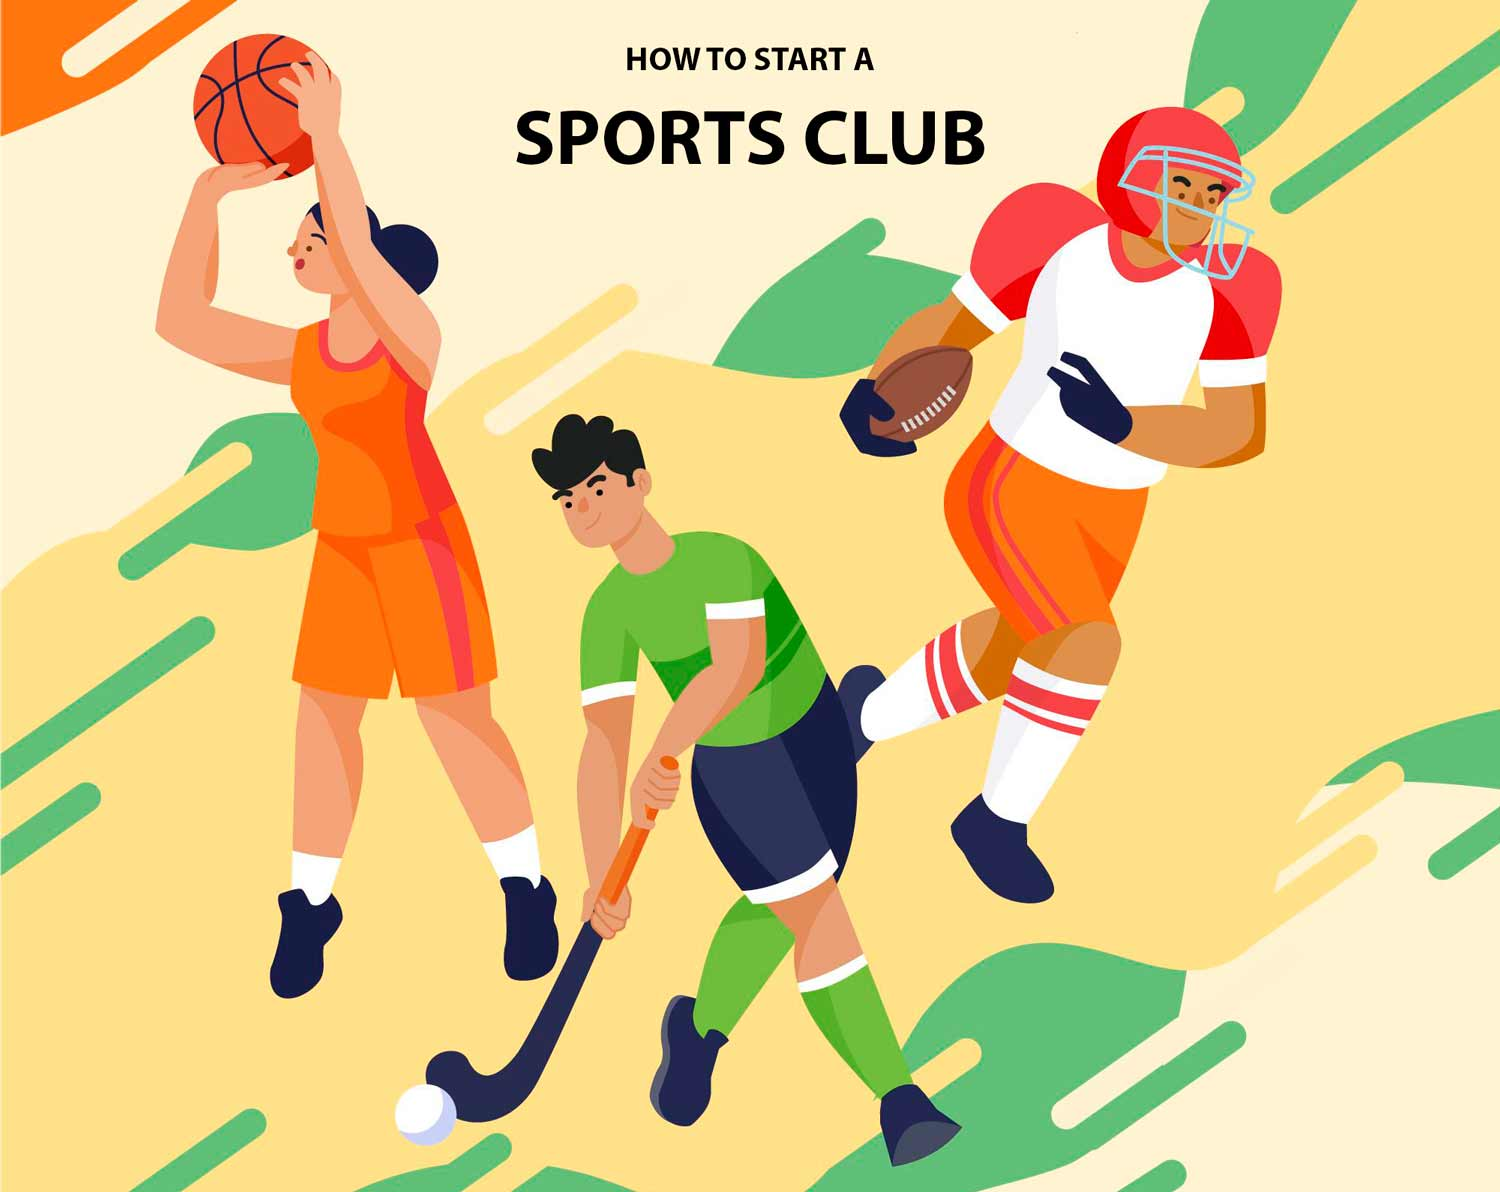 How to start a sports club